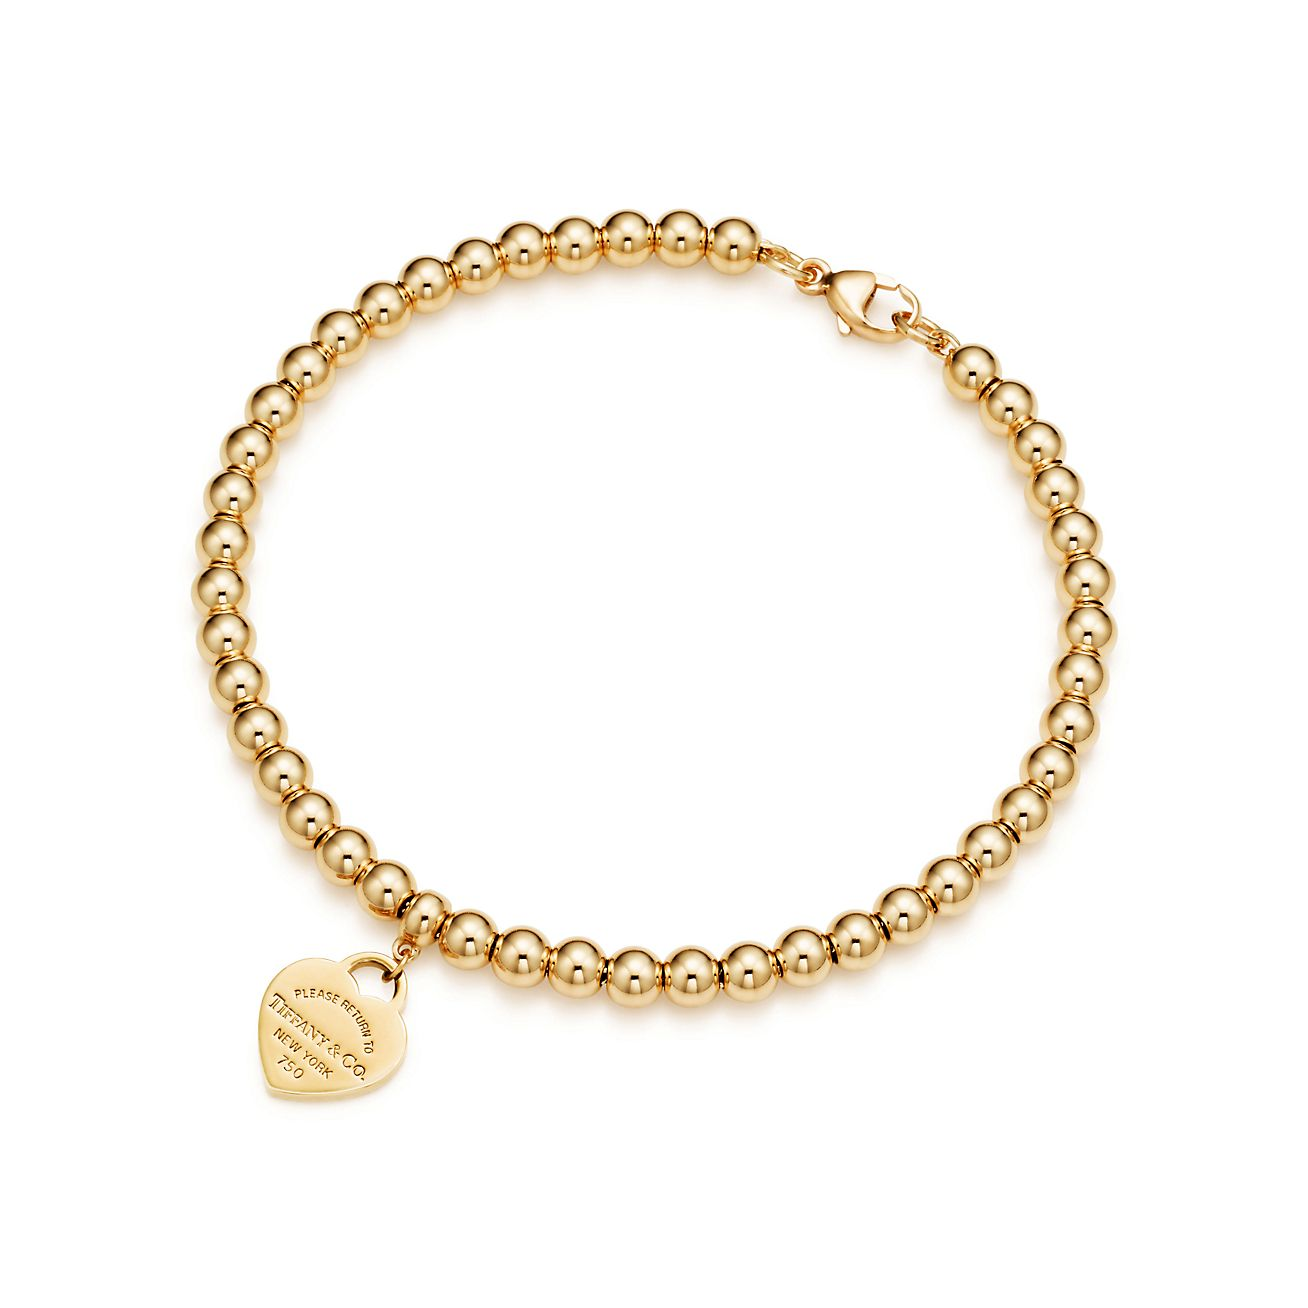 Tag In 18k Gold On A Bead Bracelet